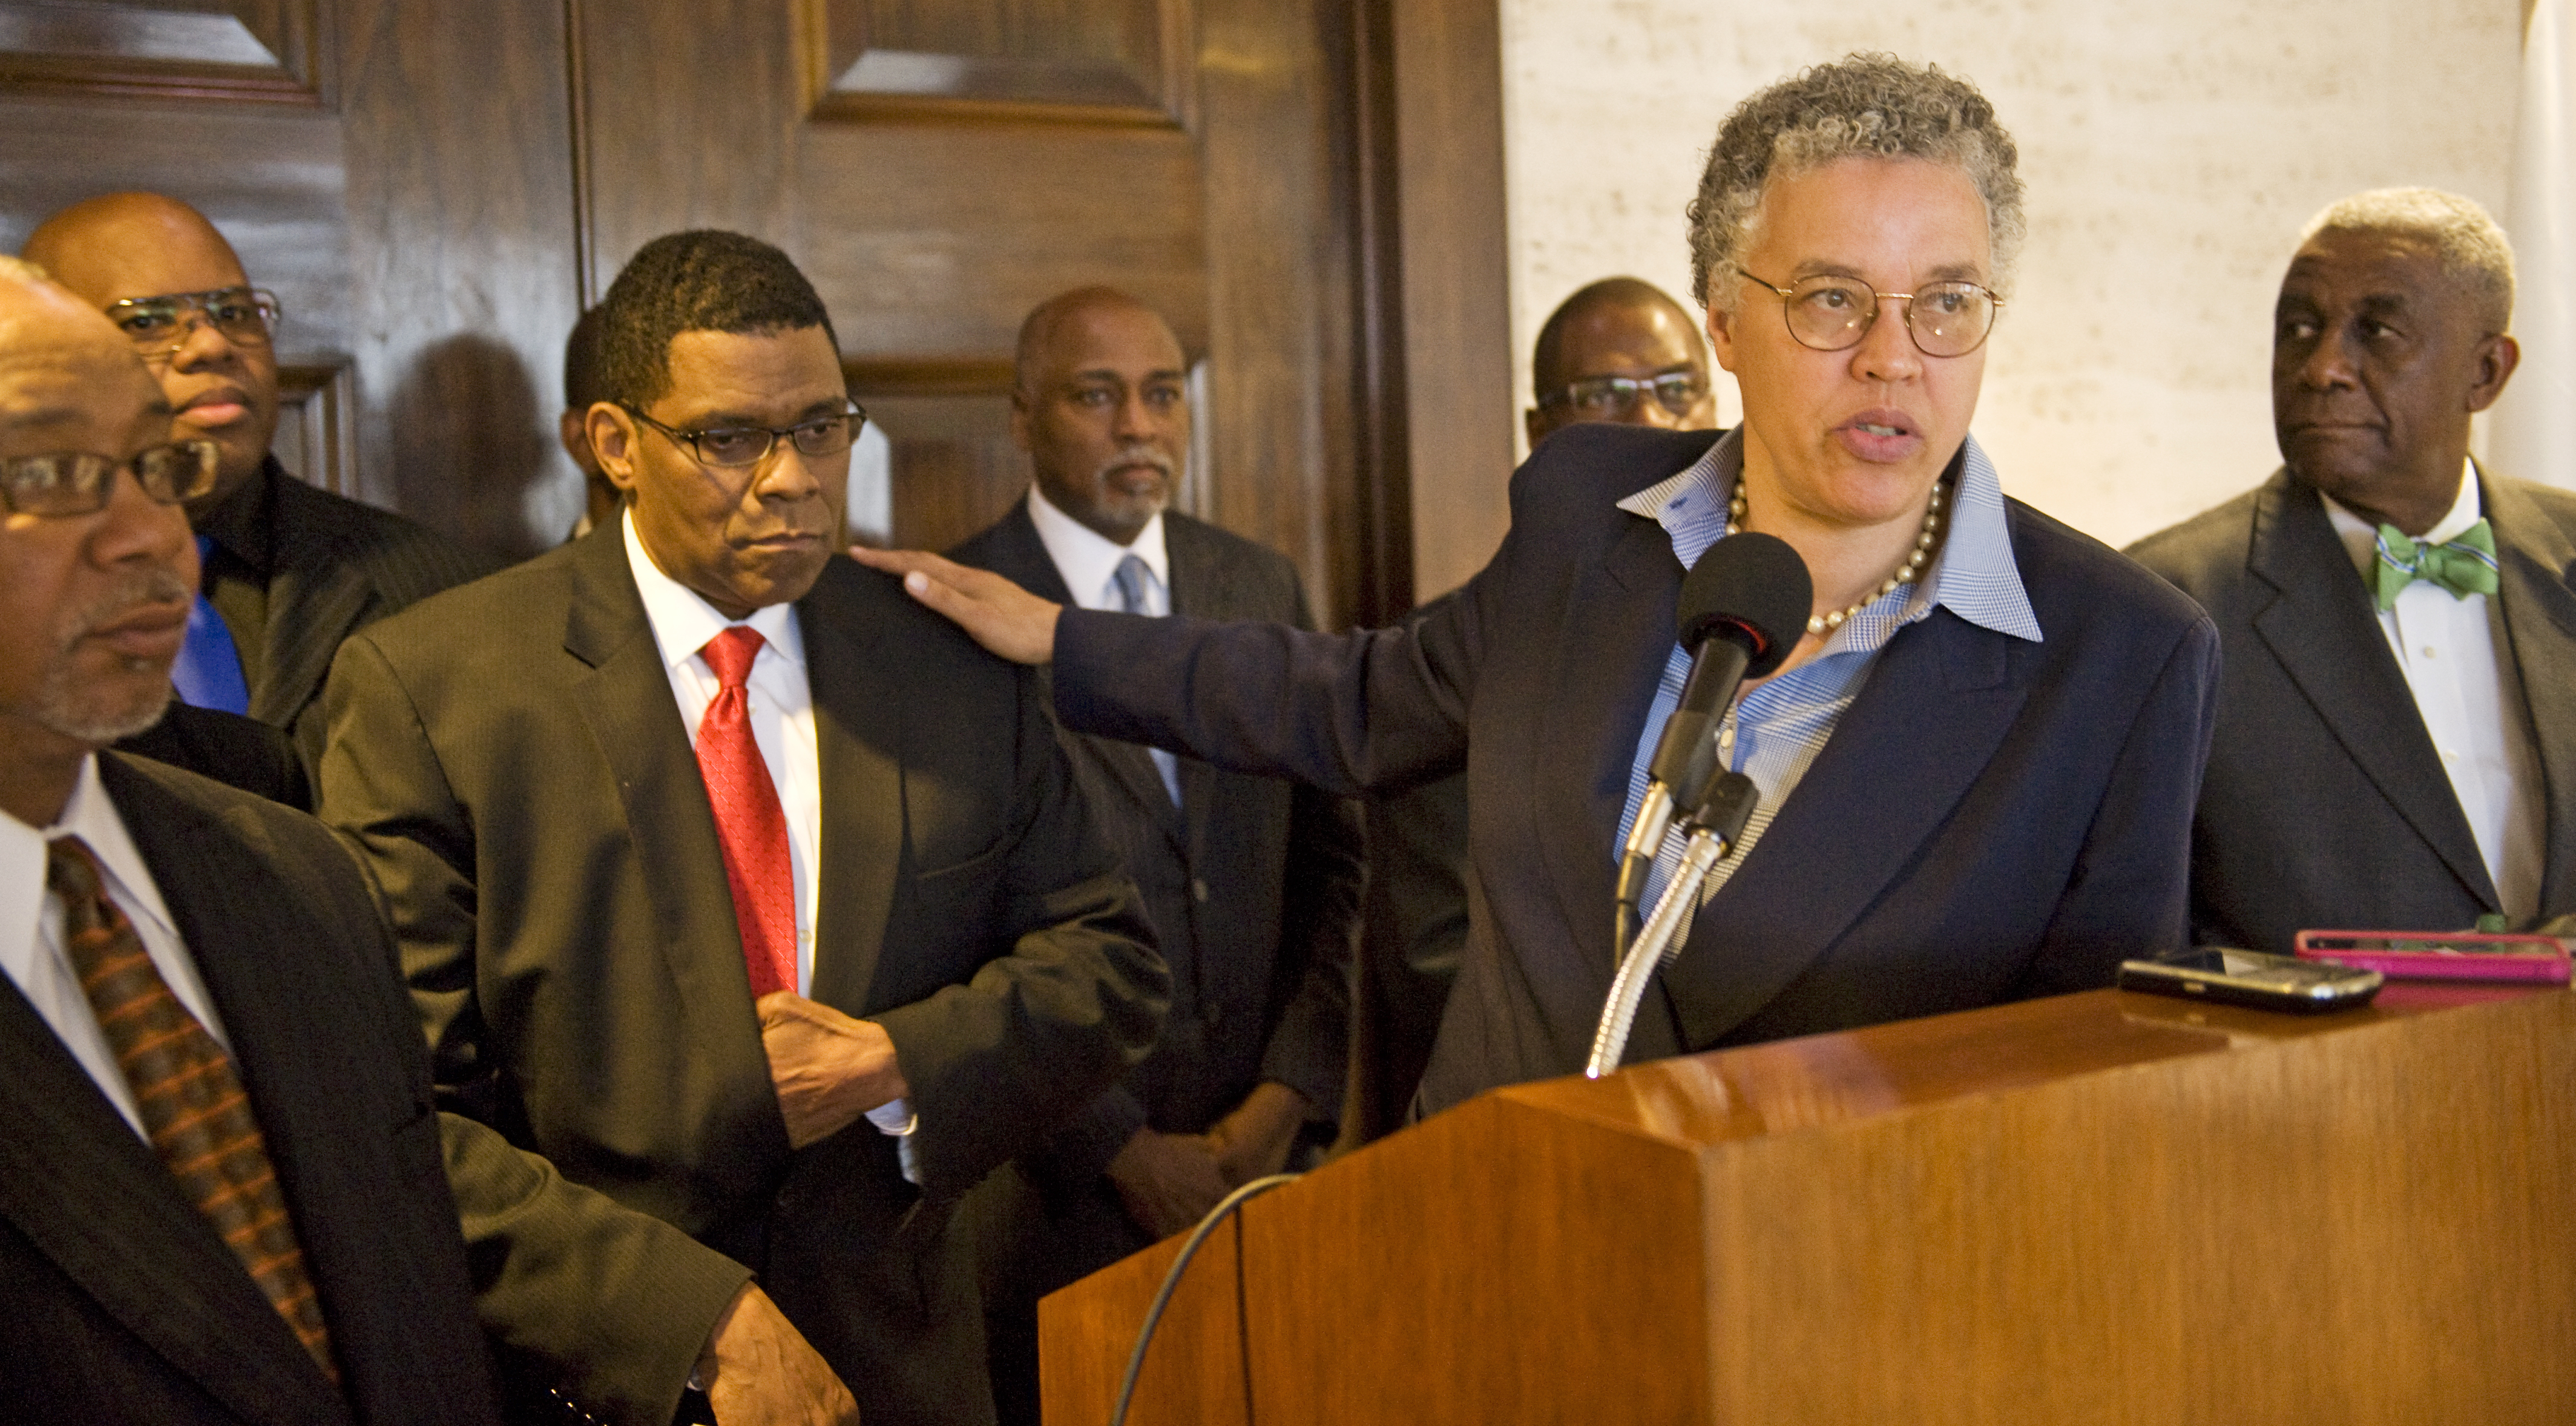 Cook County Board President Toni Preckwinkle introduces Dr. Terry Mason